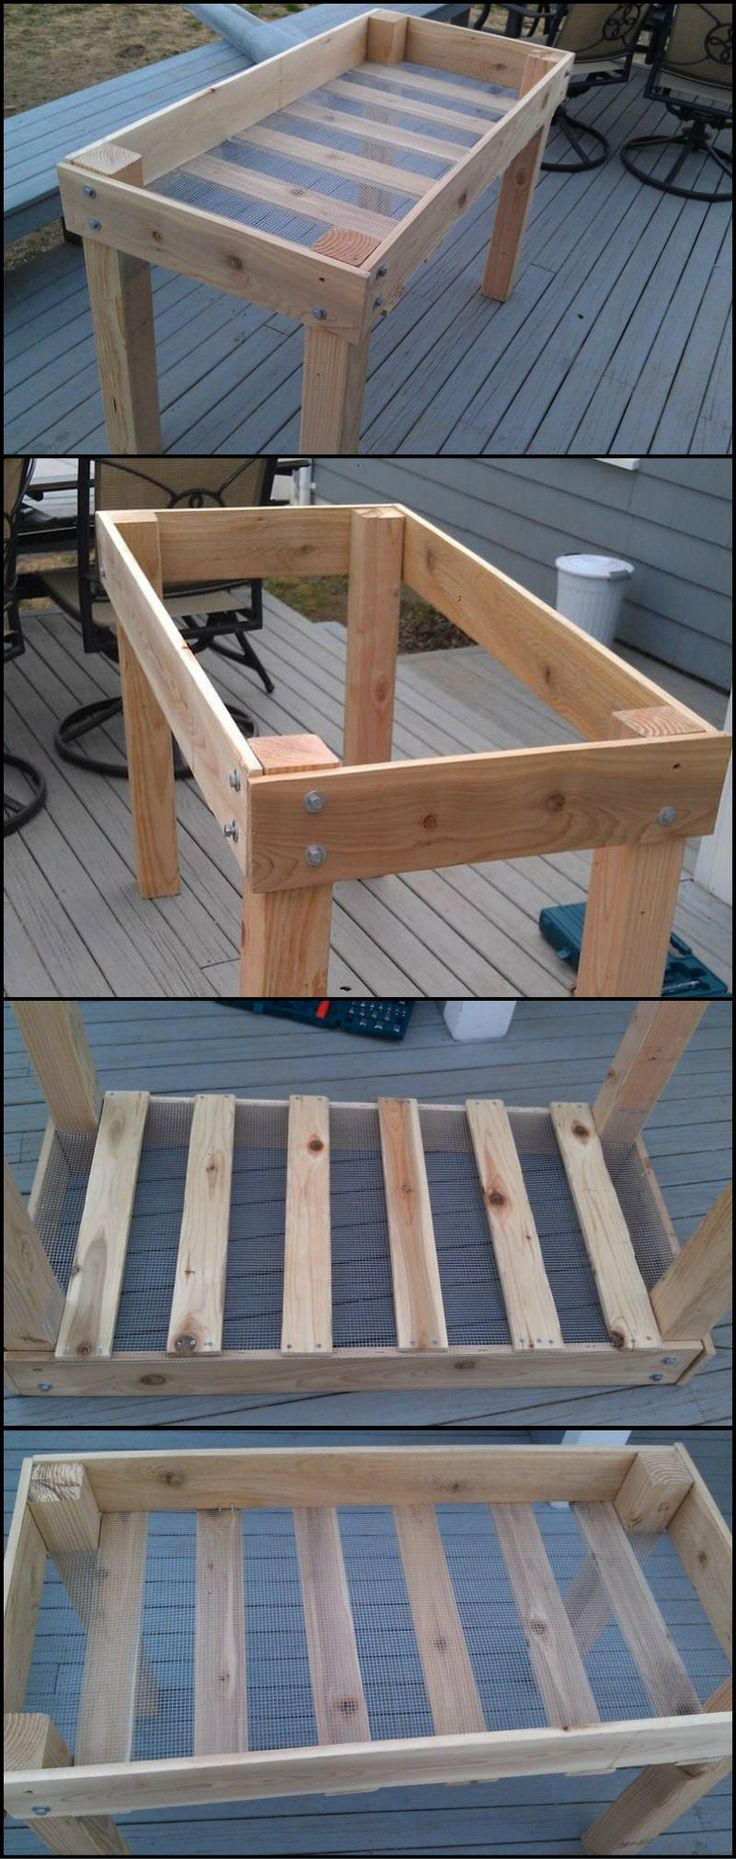 How To Build Your Own Raised Herb Planter  http://theownerbuildernetwork.co/c6xb  Does tending to your plants make it hard for your back? Then a raised planter like this may be the solution.  Your plants are safe as this makes it difficult for critters to reach them. It's easier on your back as you don't have to hunch over to tend to your plants.